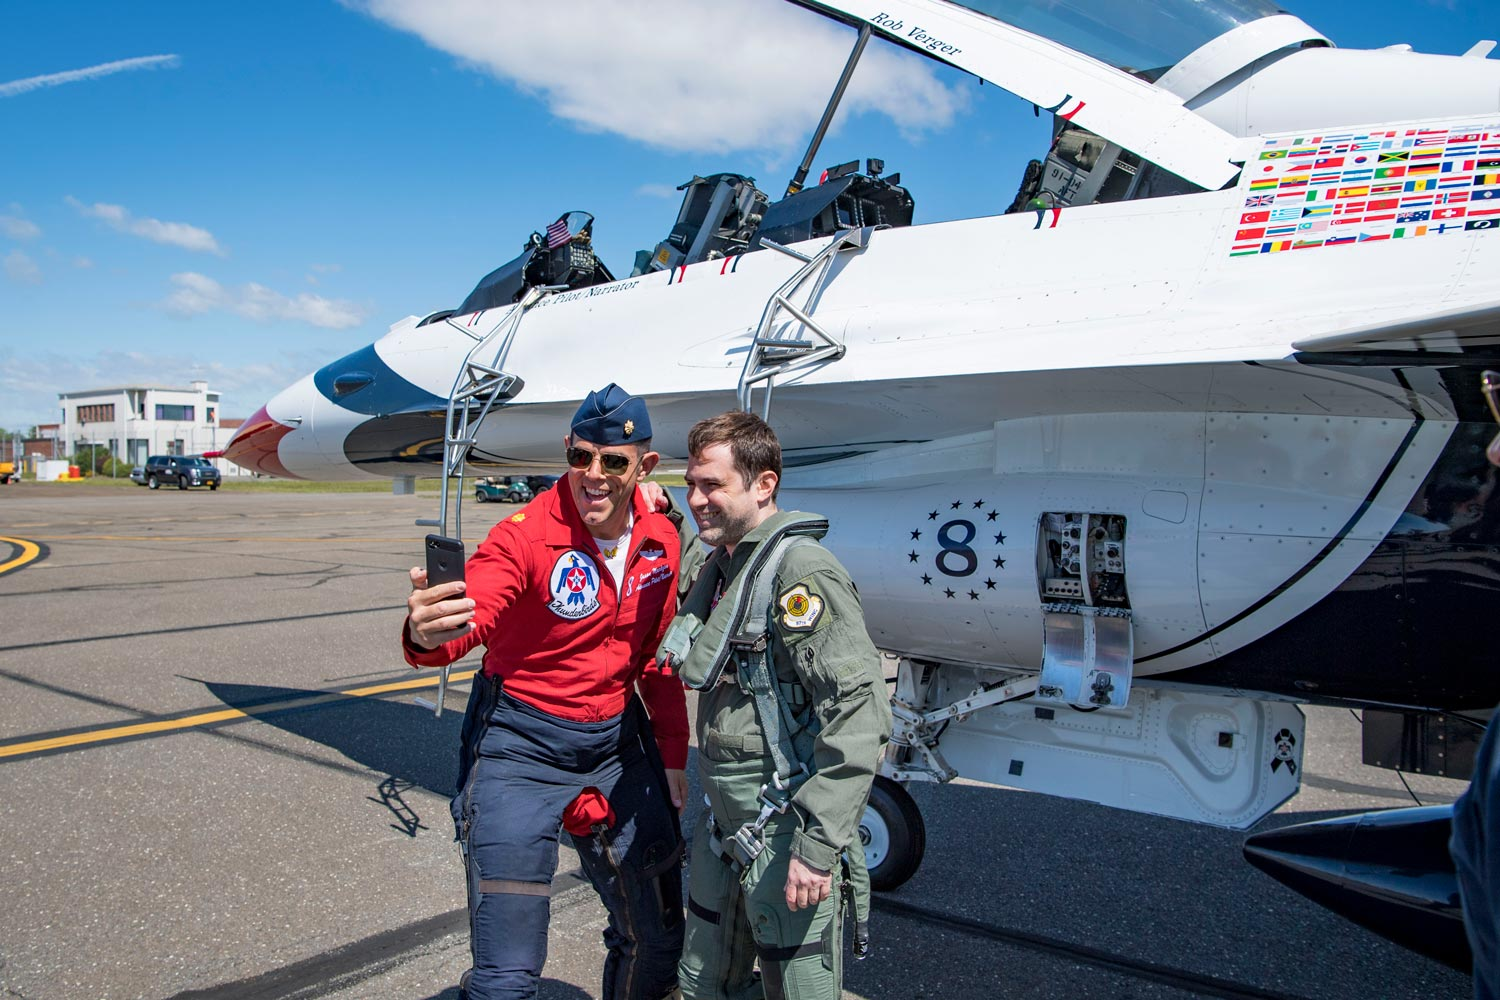 I flew in an F-16 with the Air Force and oh boy did it go poorly